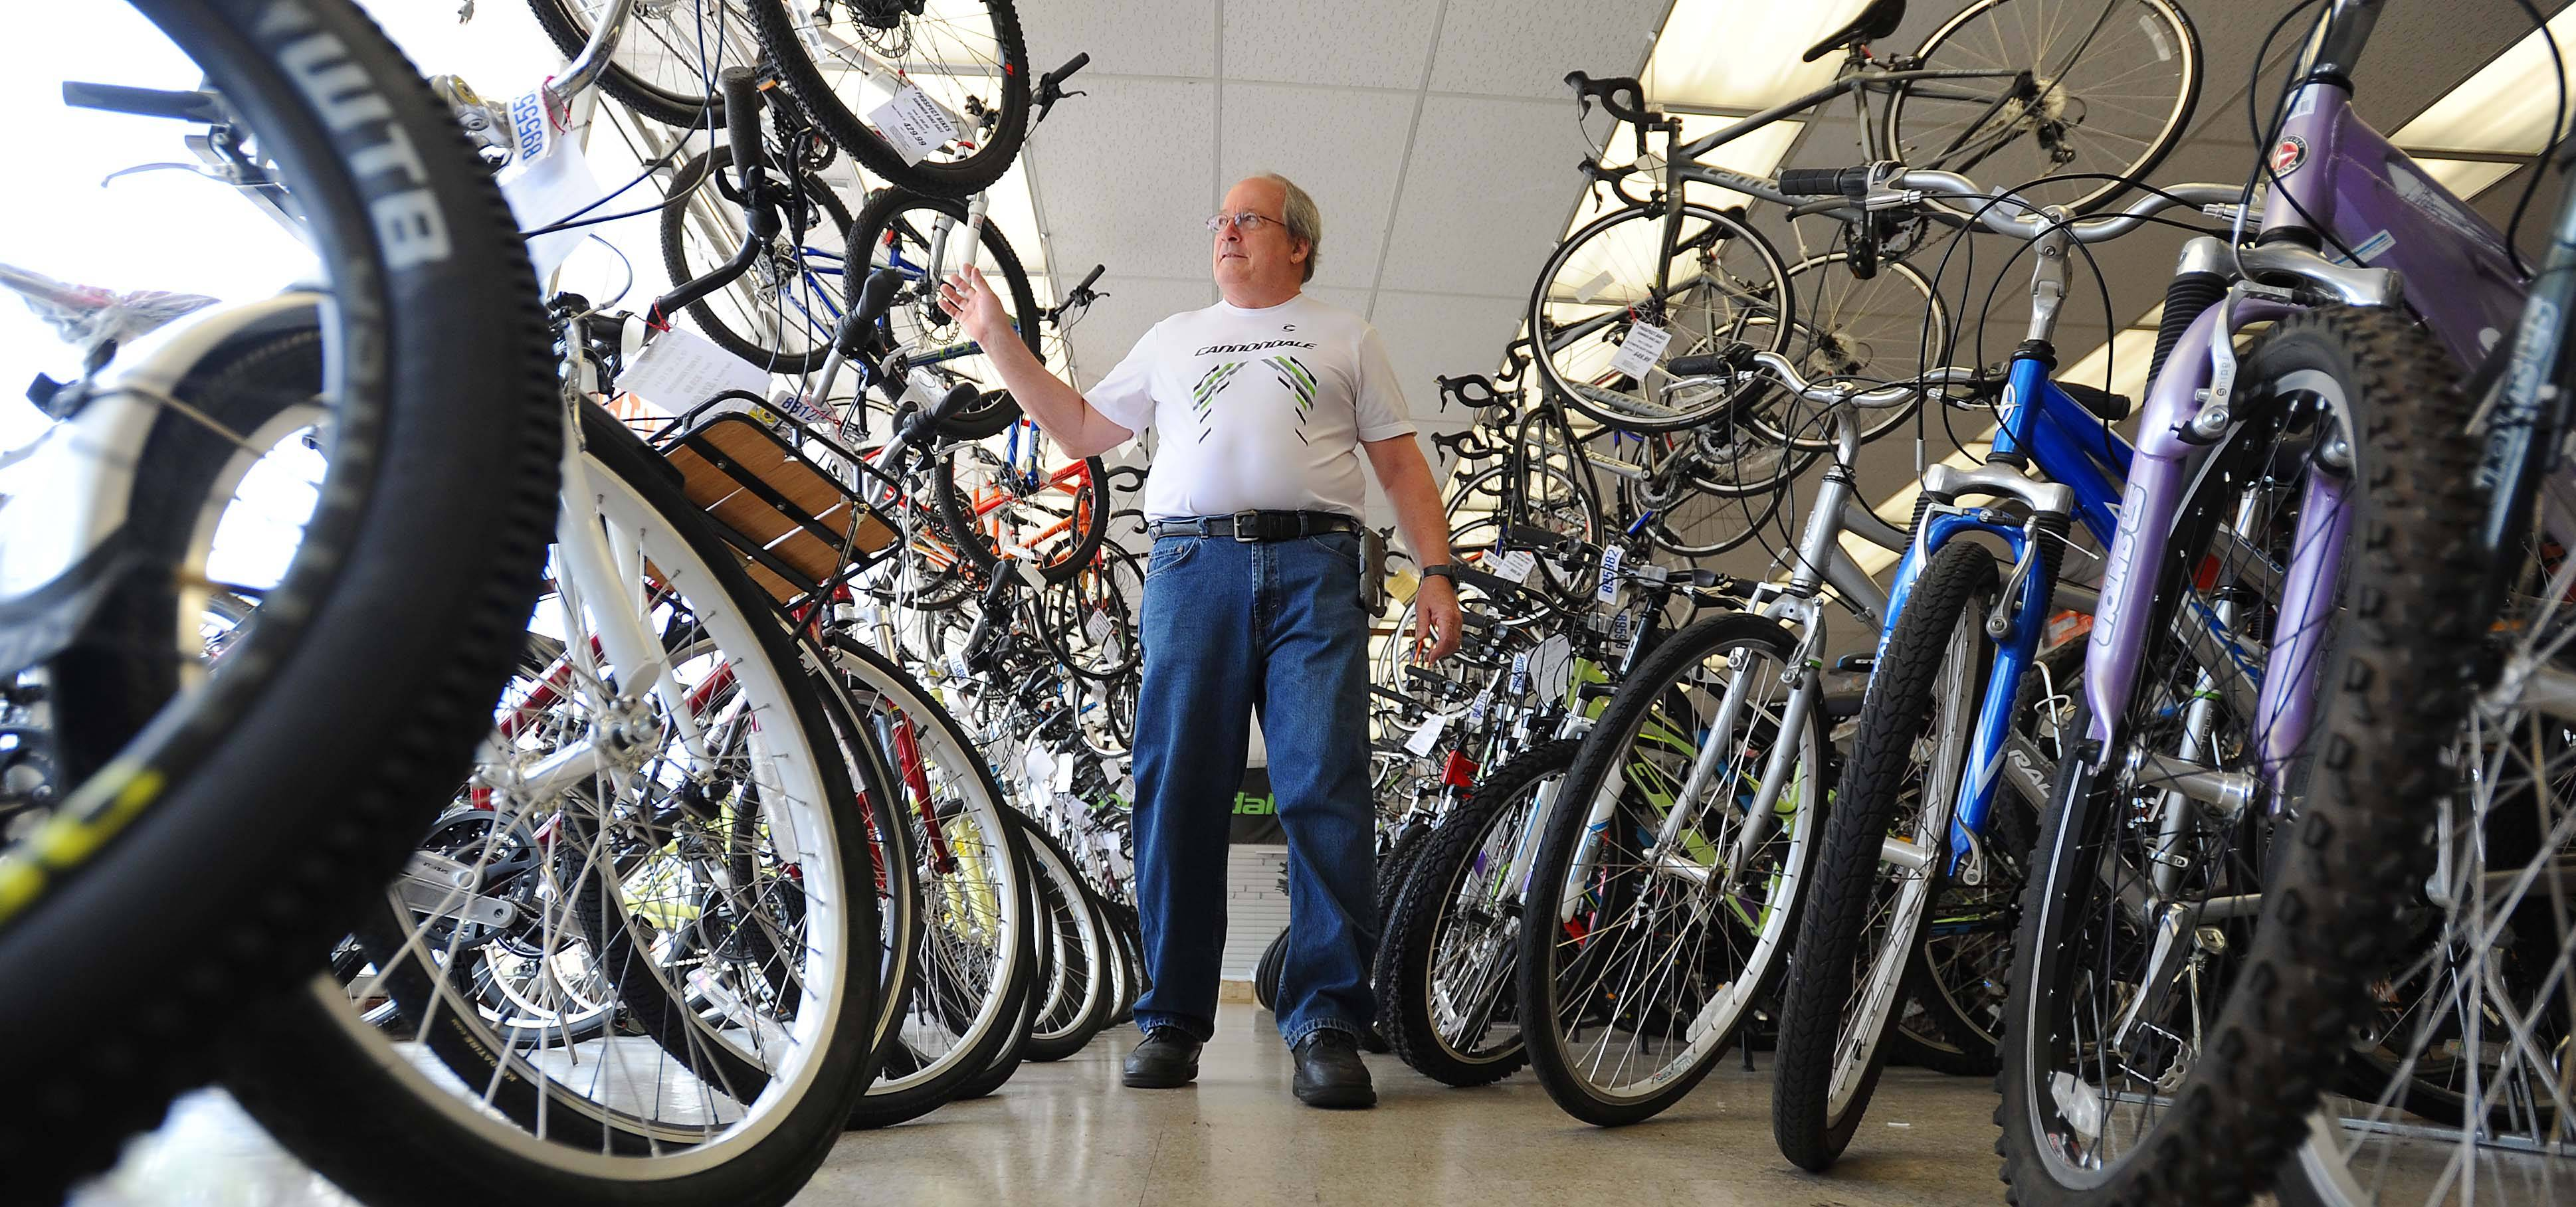 Bill Schmoldt, owner of Prospect Bikes in Mount Prospect, is retiring and will close his business at the end of the month after working in the industry for five decades.